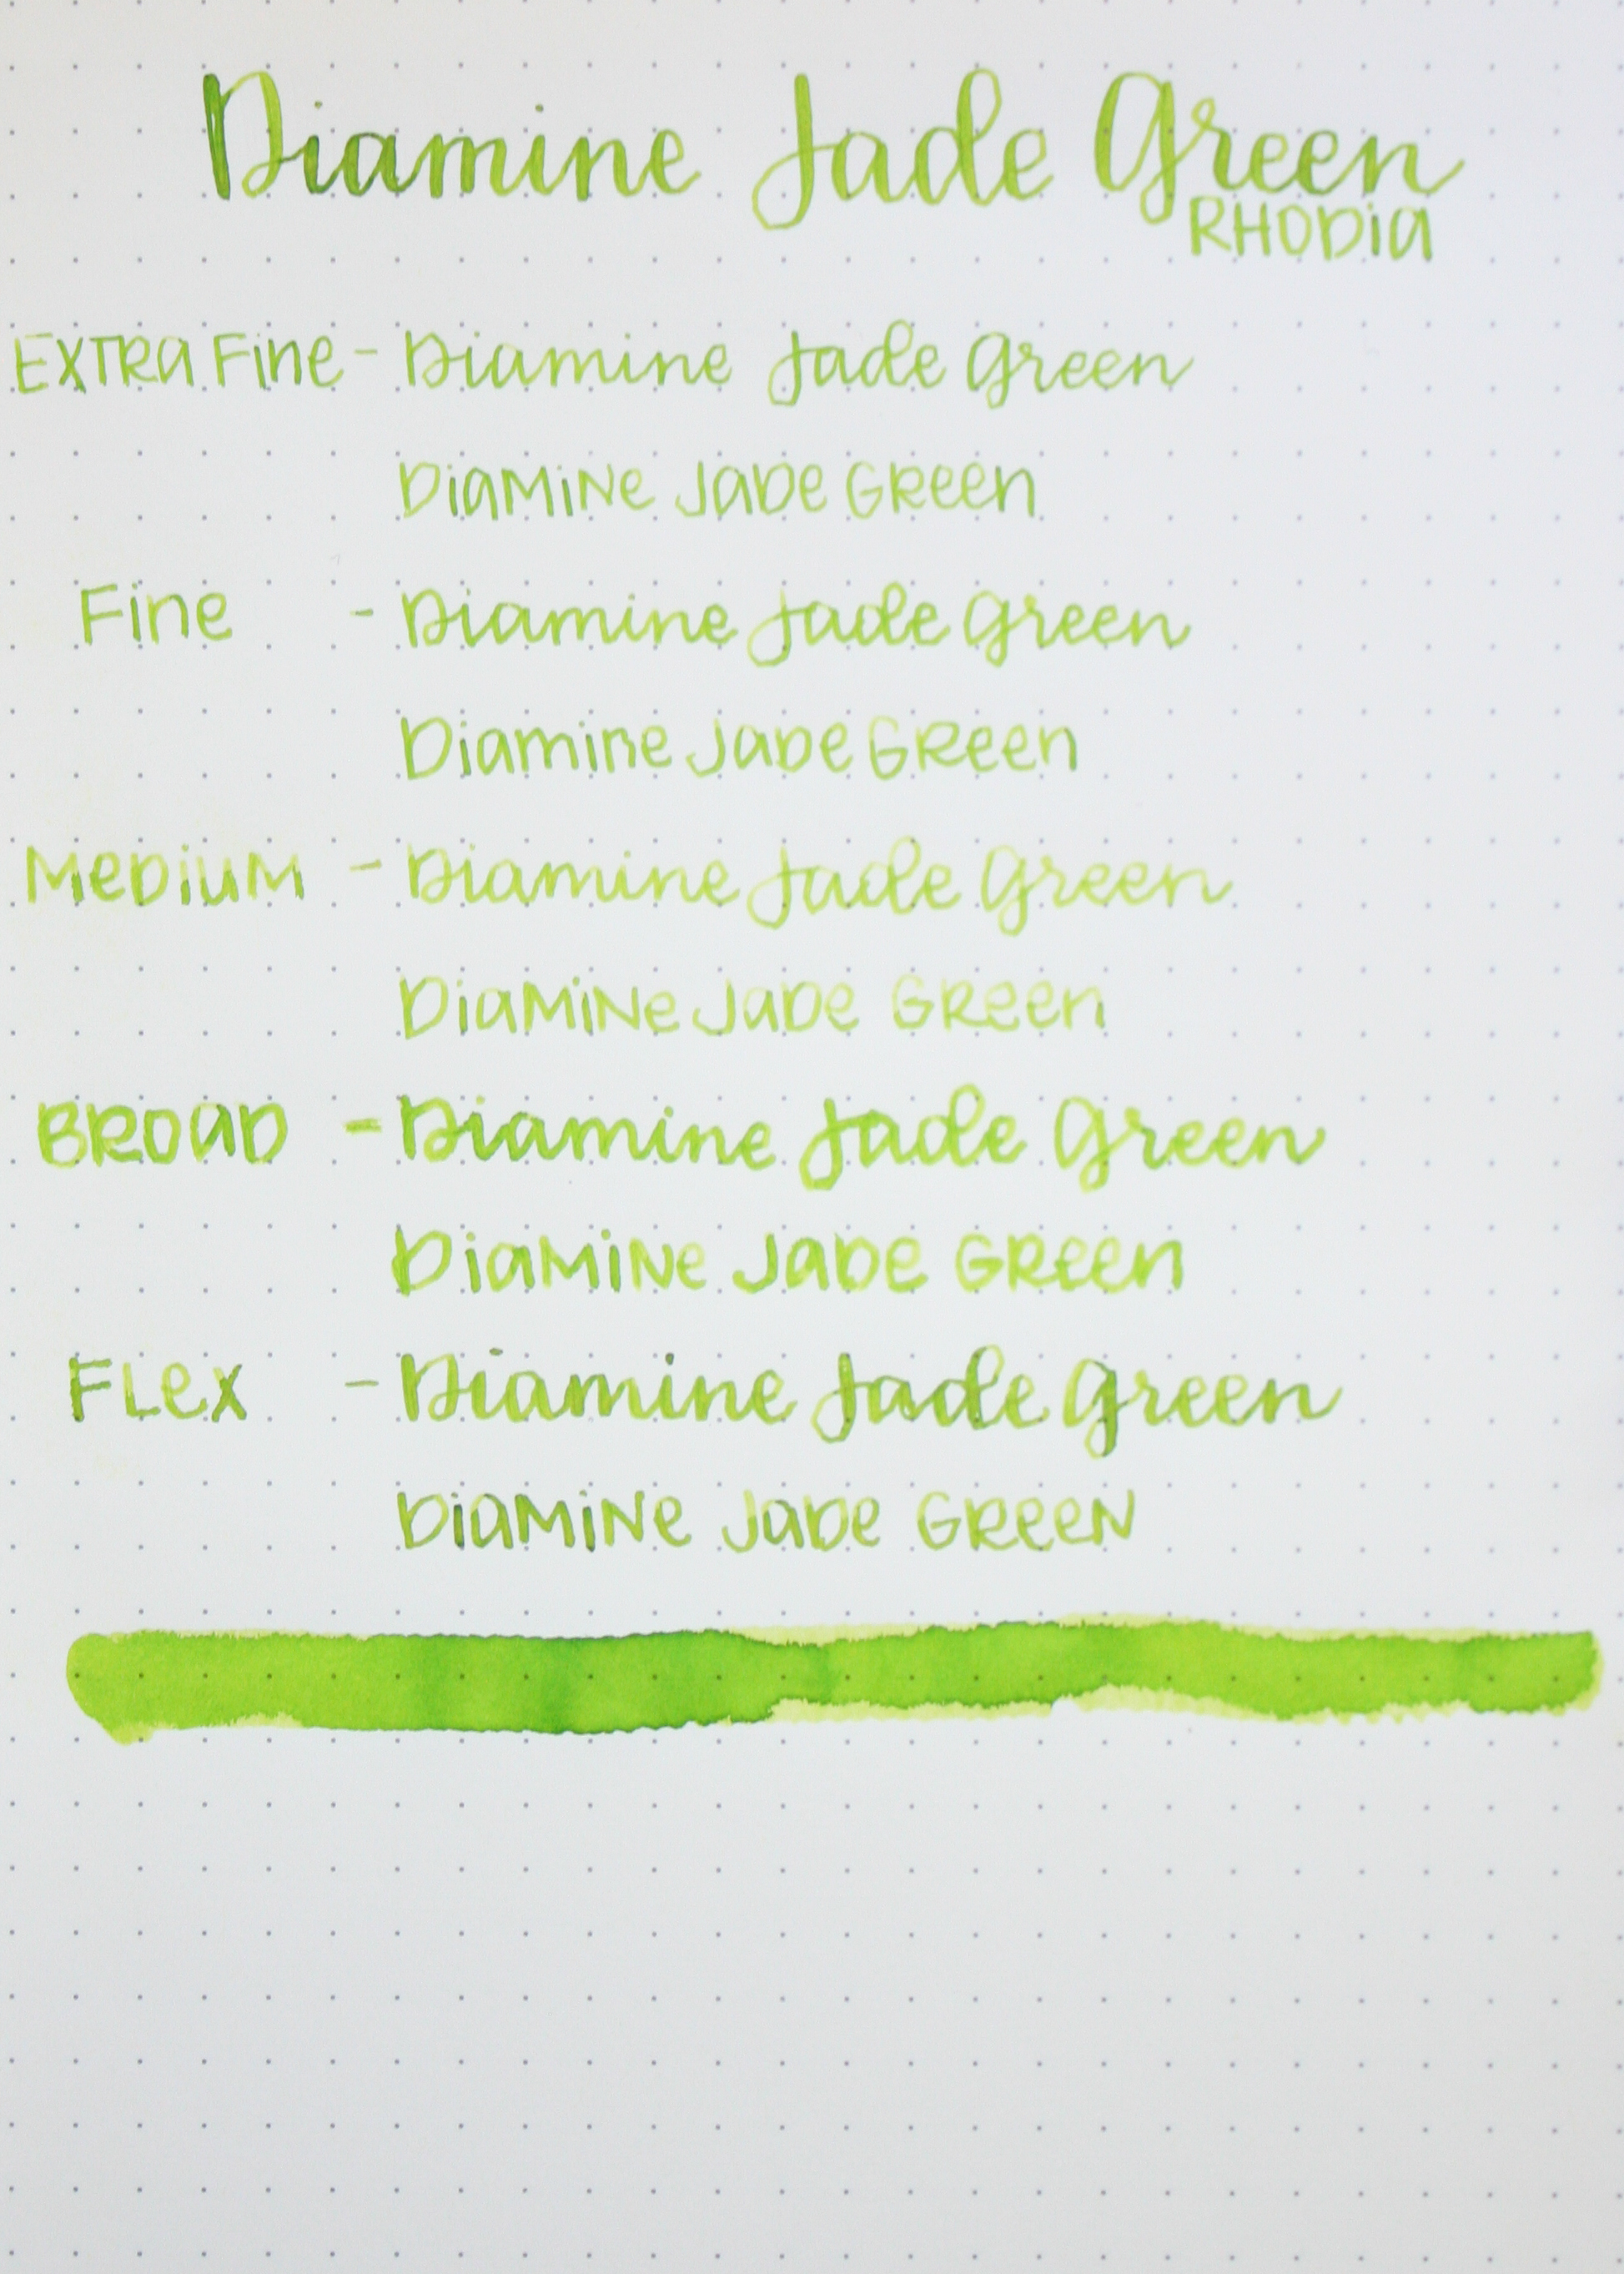 DiamineJadeGreen-031.jpg